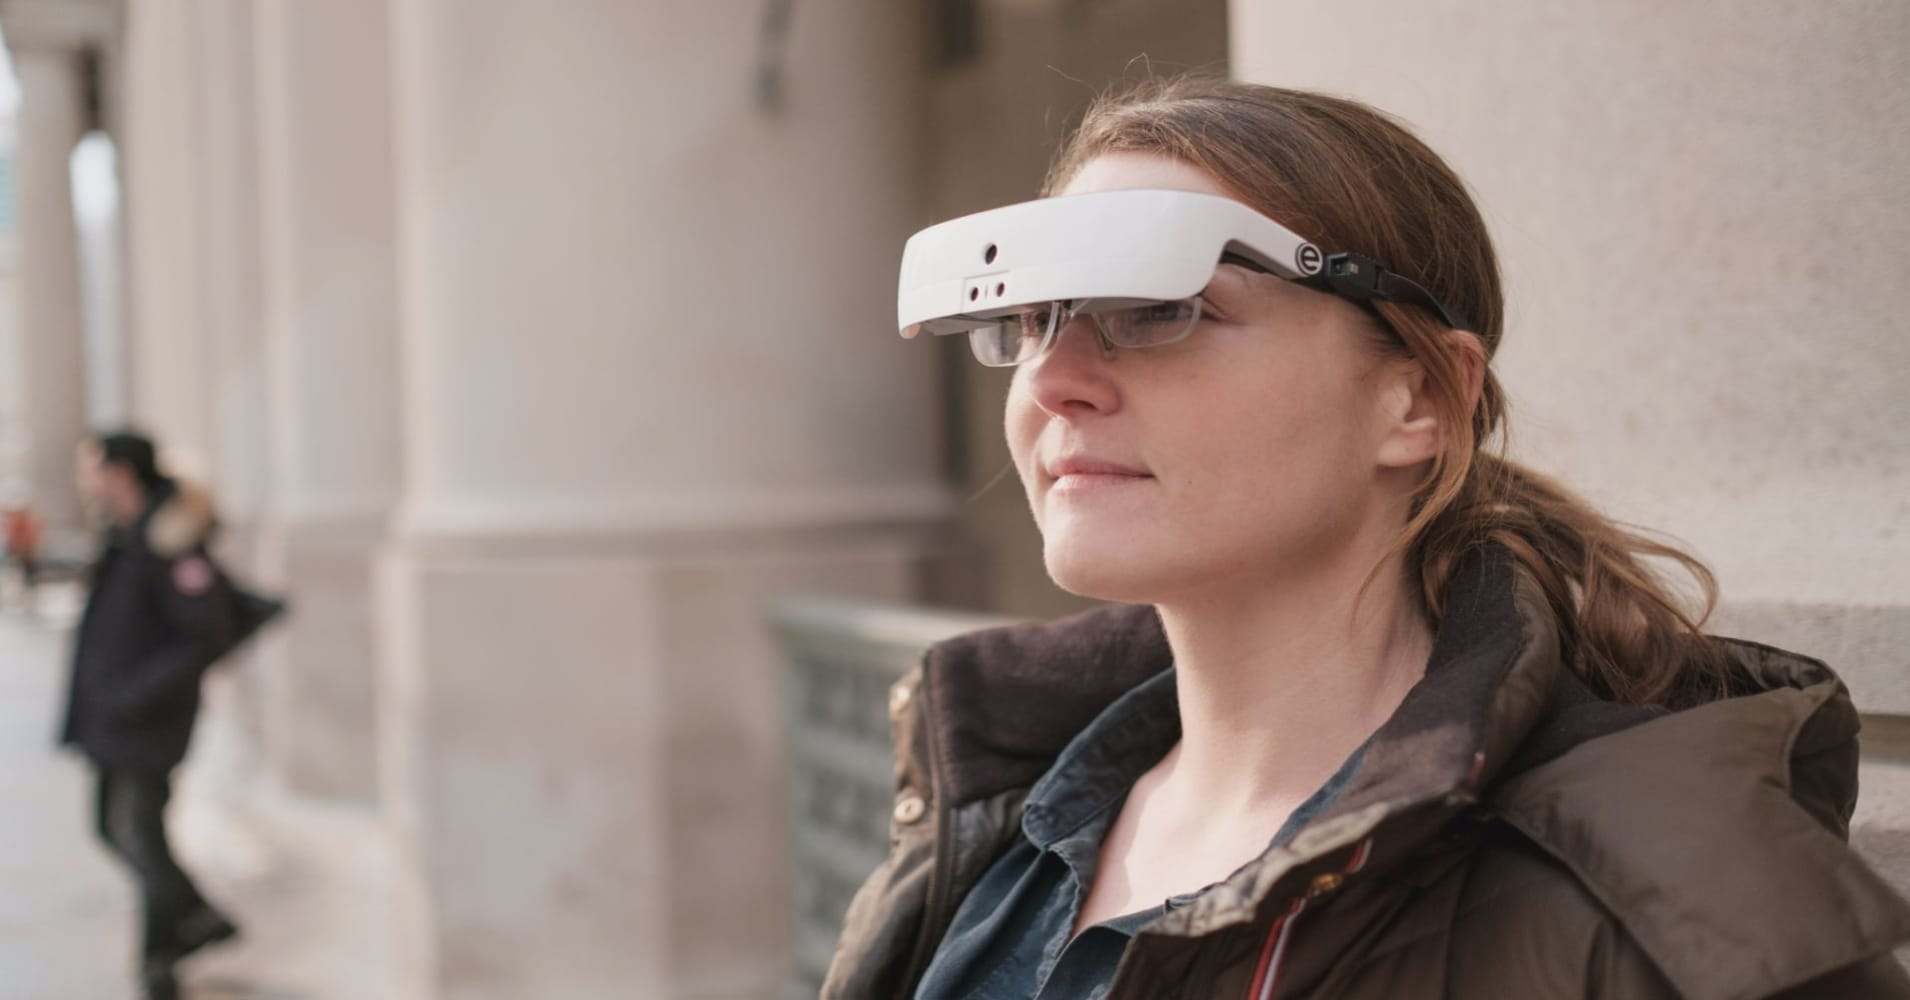 These High Tech Glasses Let The Legally Blind See